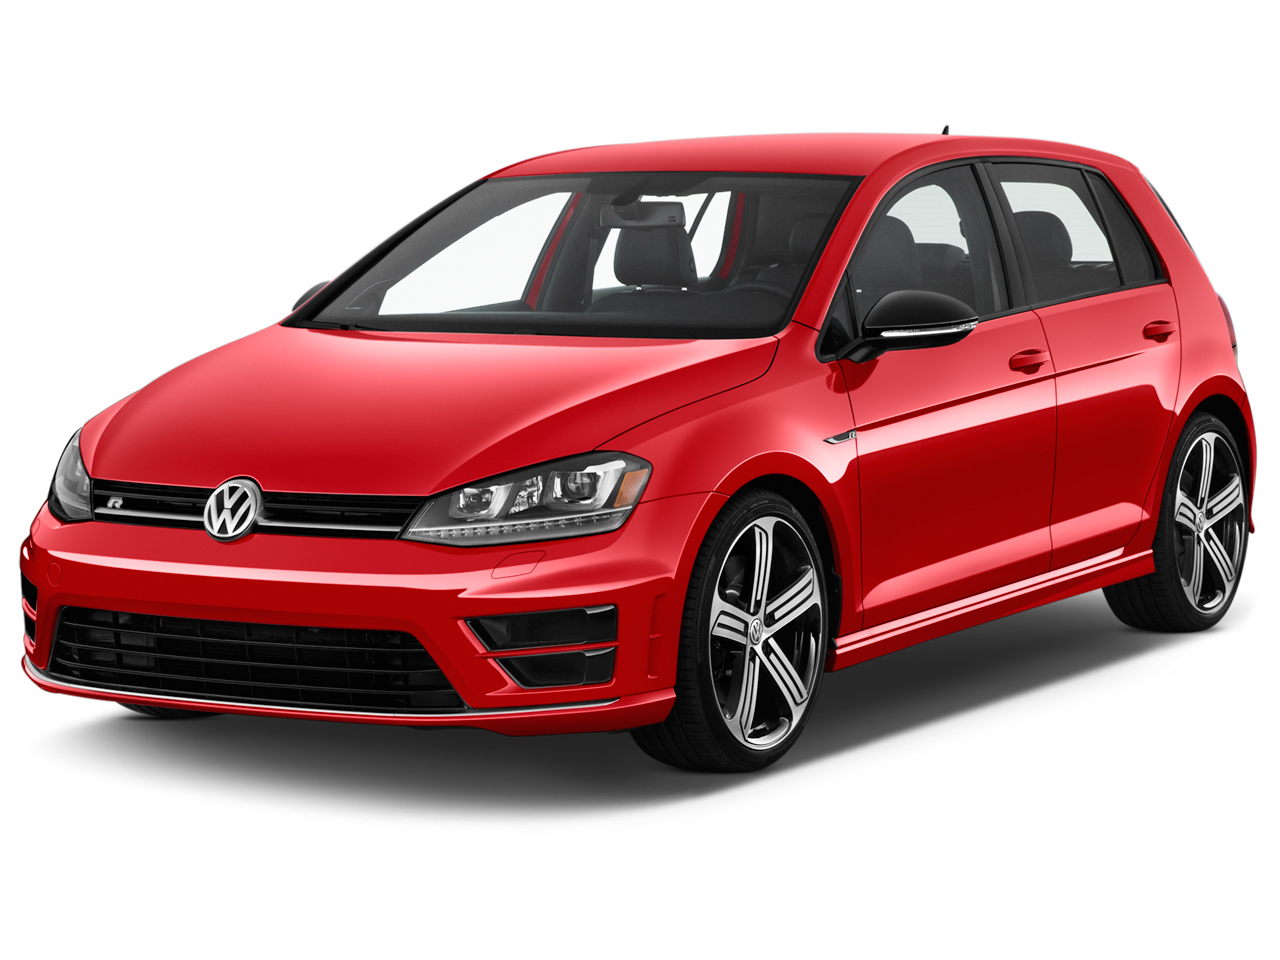 new and used volkswagen golf r vw prices photos reviews specs the car connection. Black Bedroom Furniture Sets. Home Design Ideas